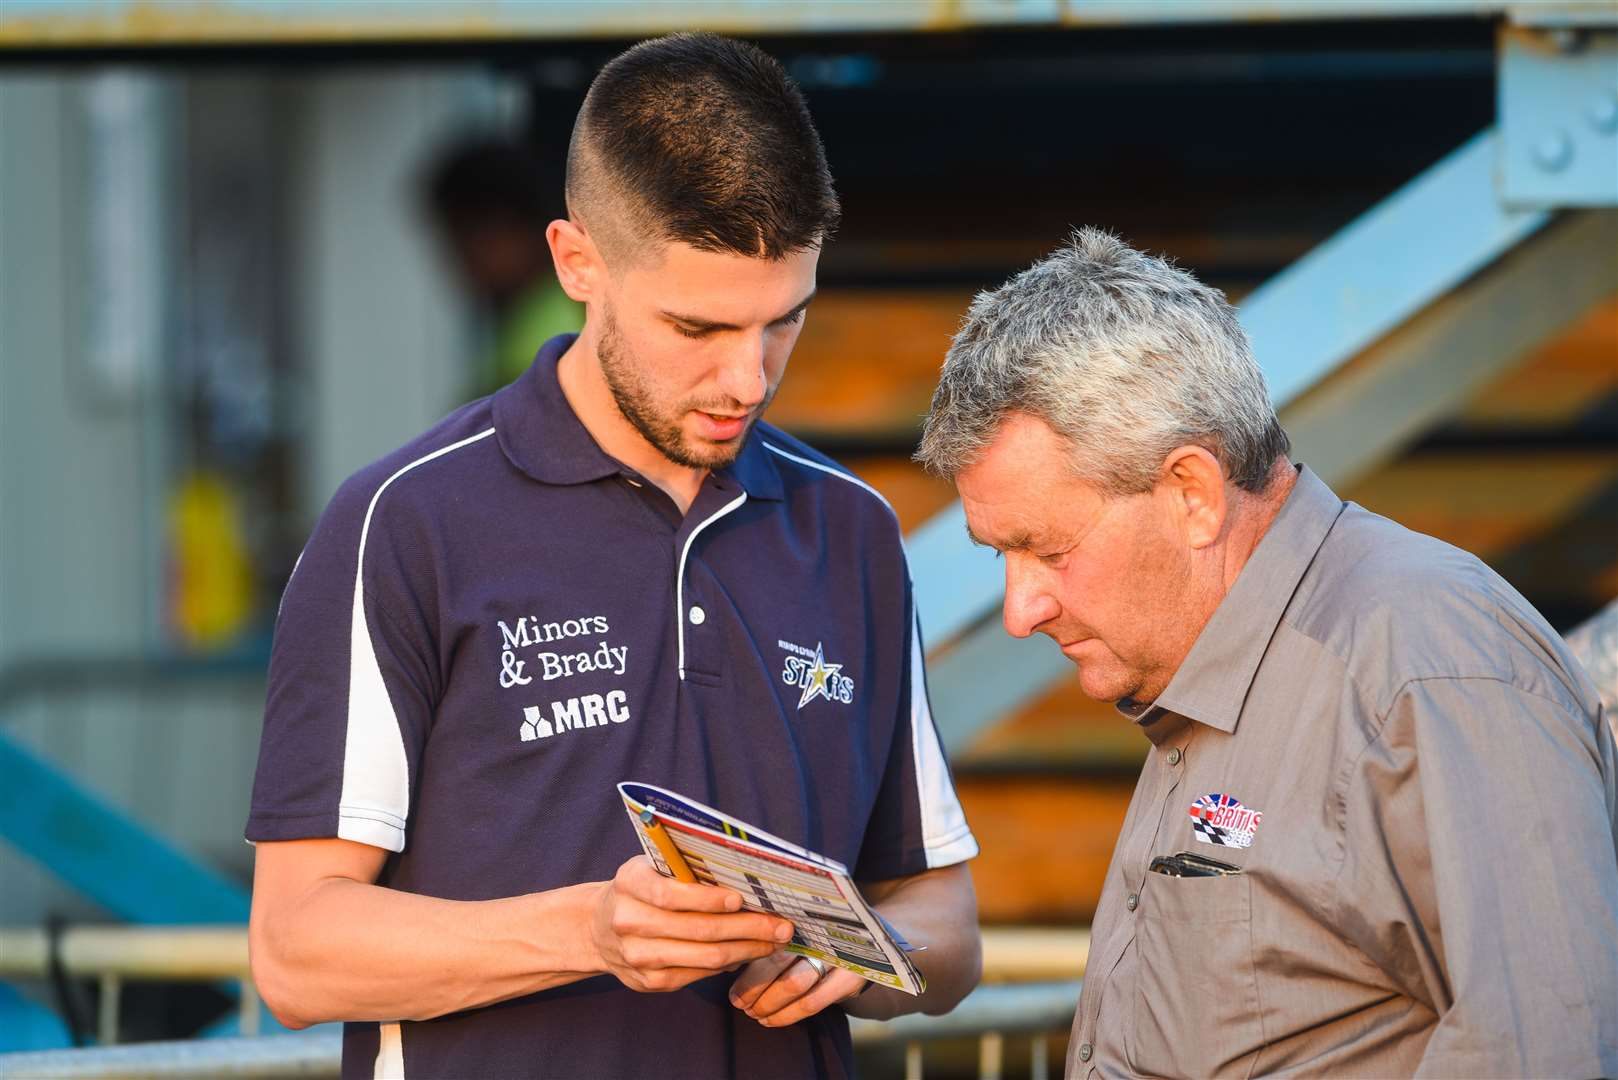 Buster Chapman, seen here, right, with Stars boss Alex Brady at a recent meeting, said he was 'done' with speedway after tonight's late postponement